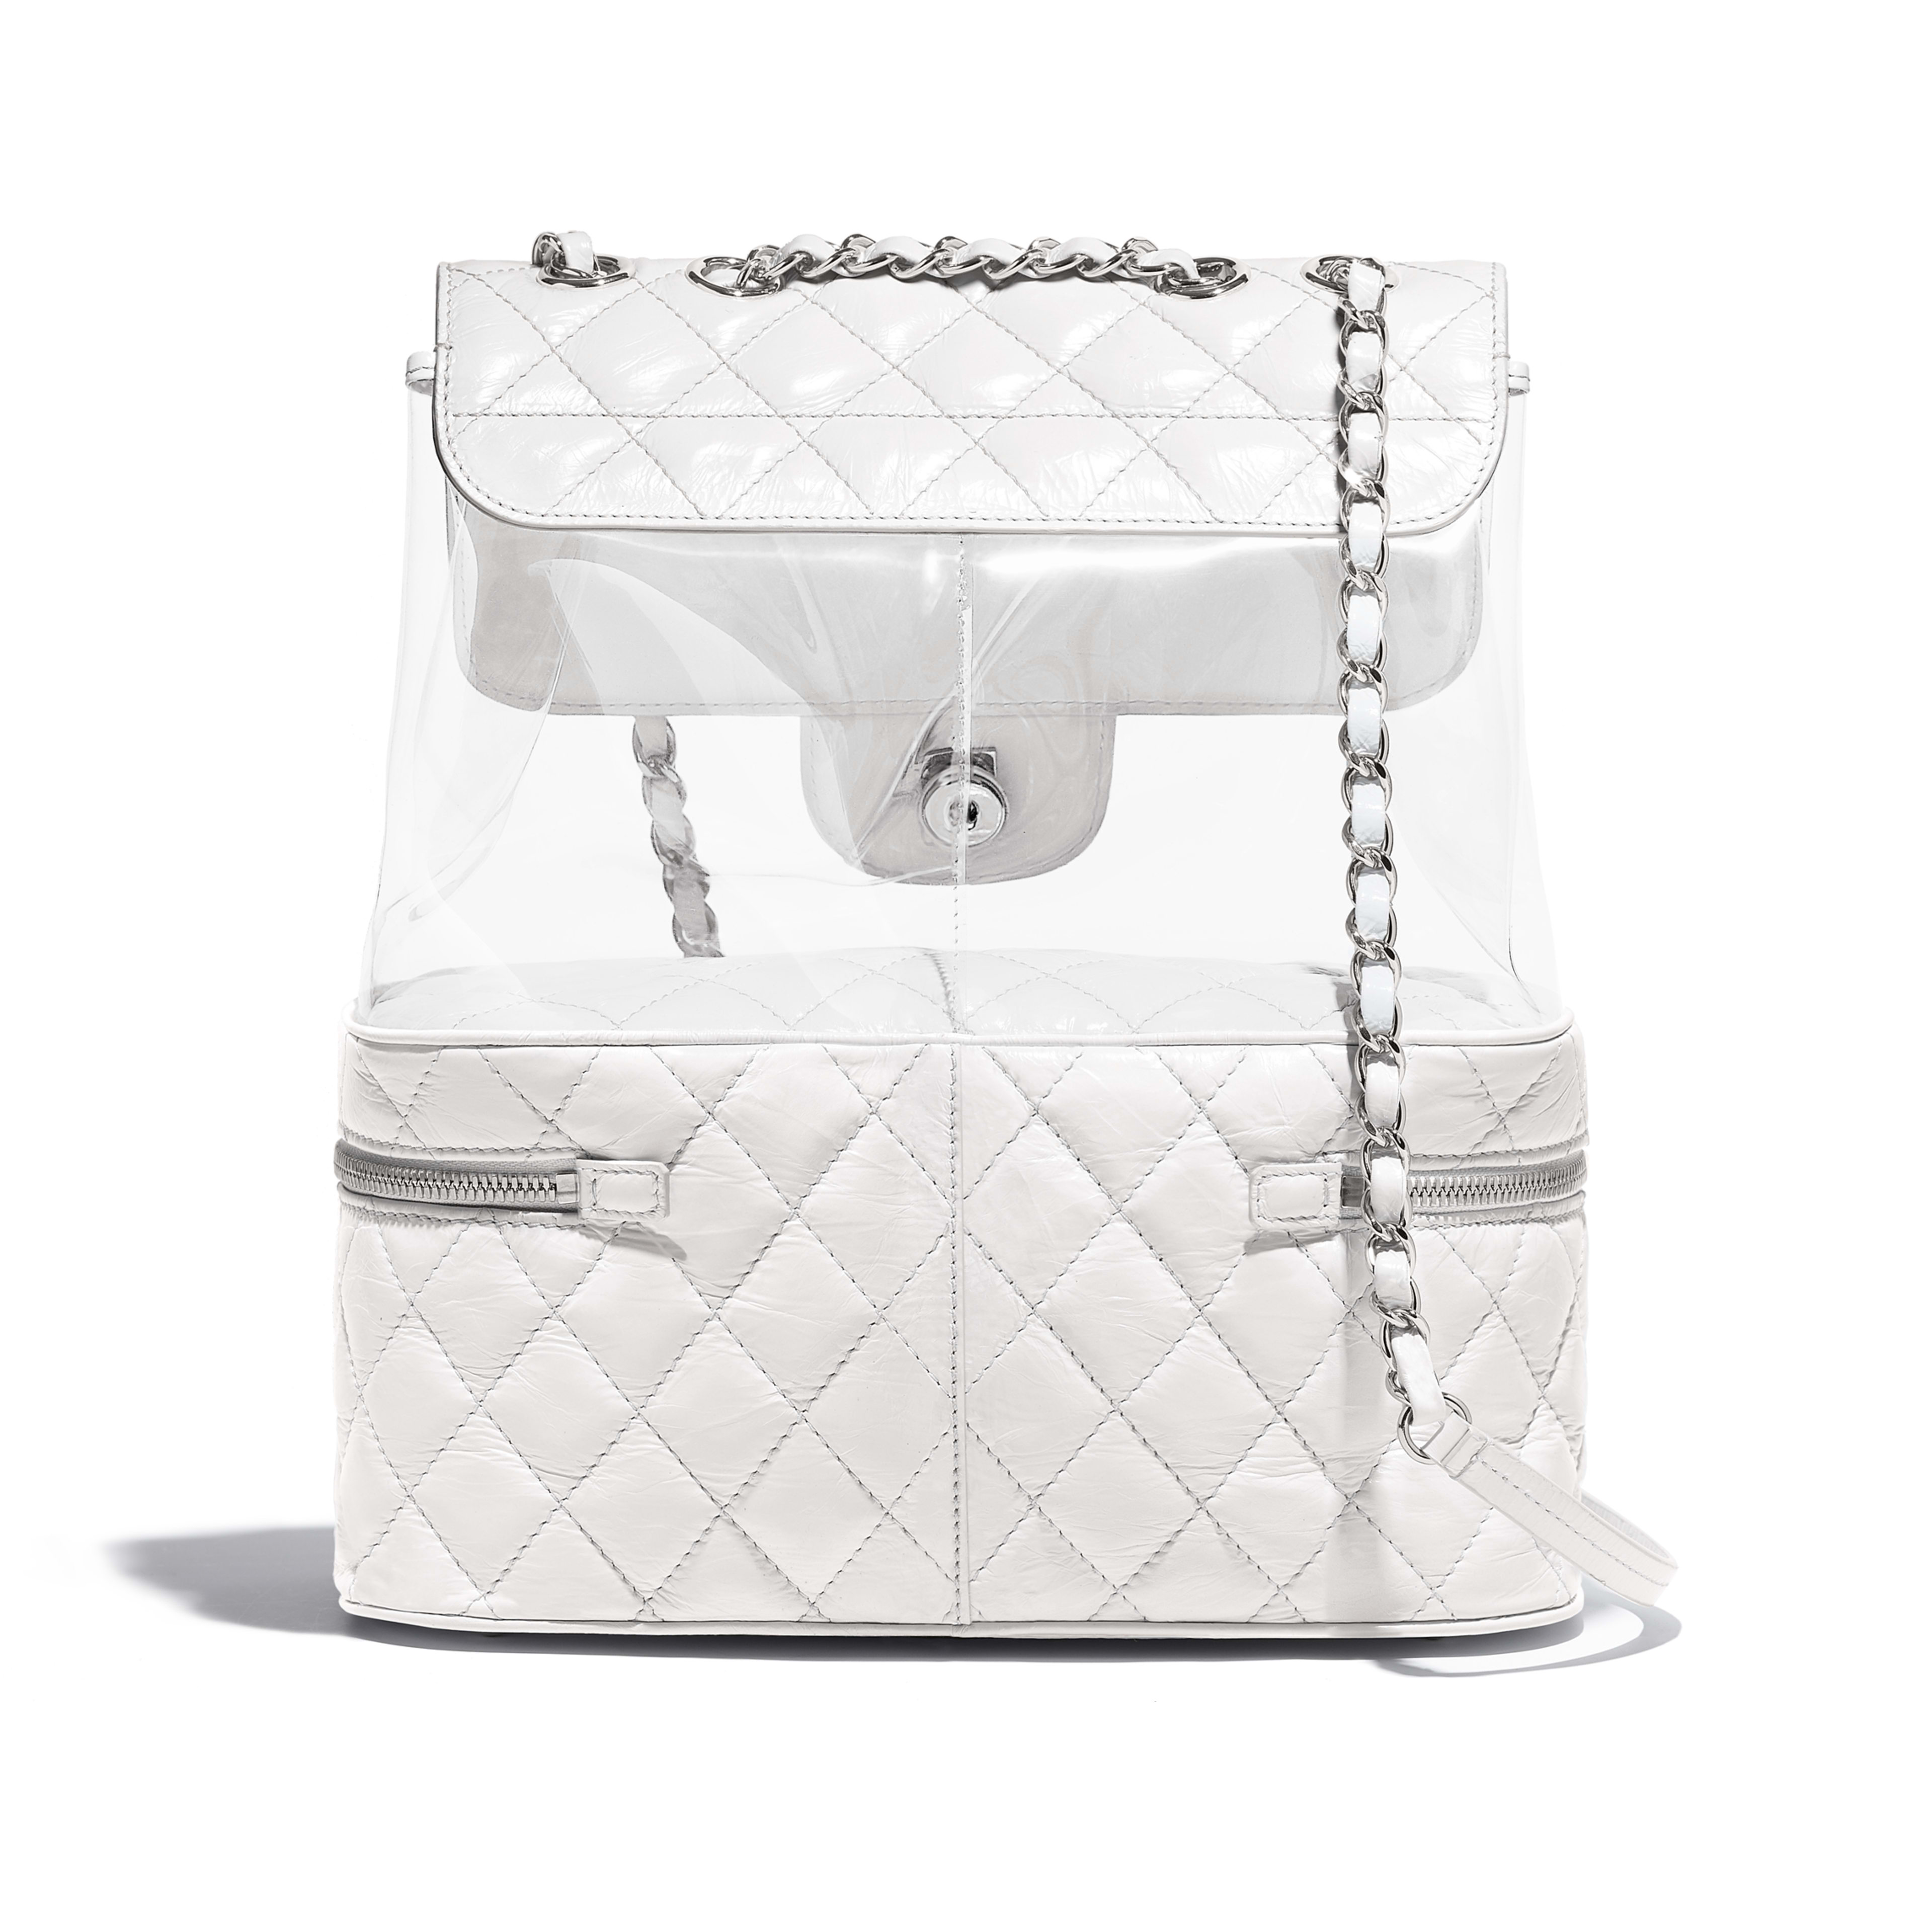 Flap Bag Crumpled Calfskin, PVC, Resin & Silver-Tone Metal White -                                       view 2 - see full sized version